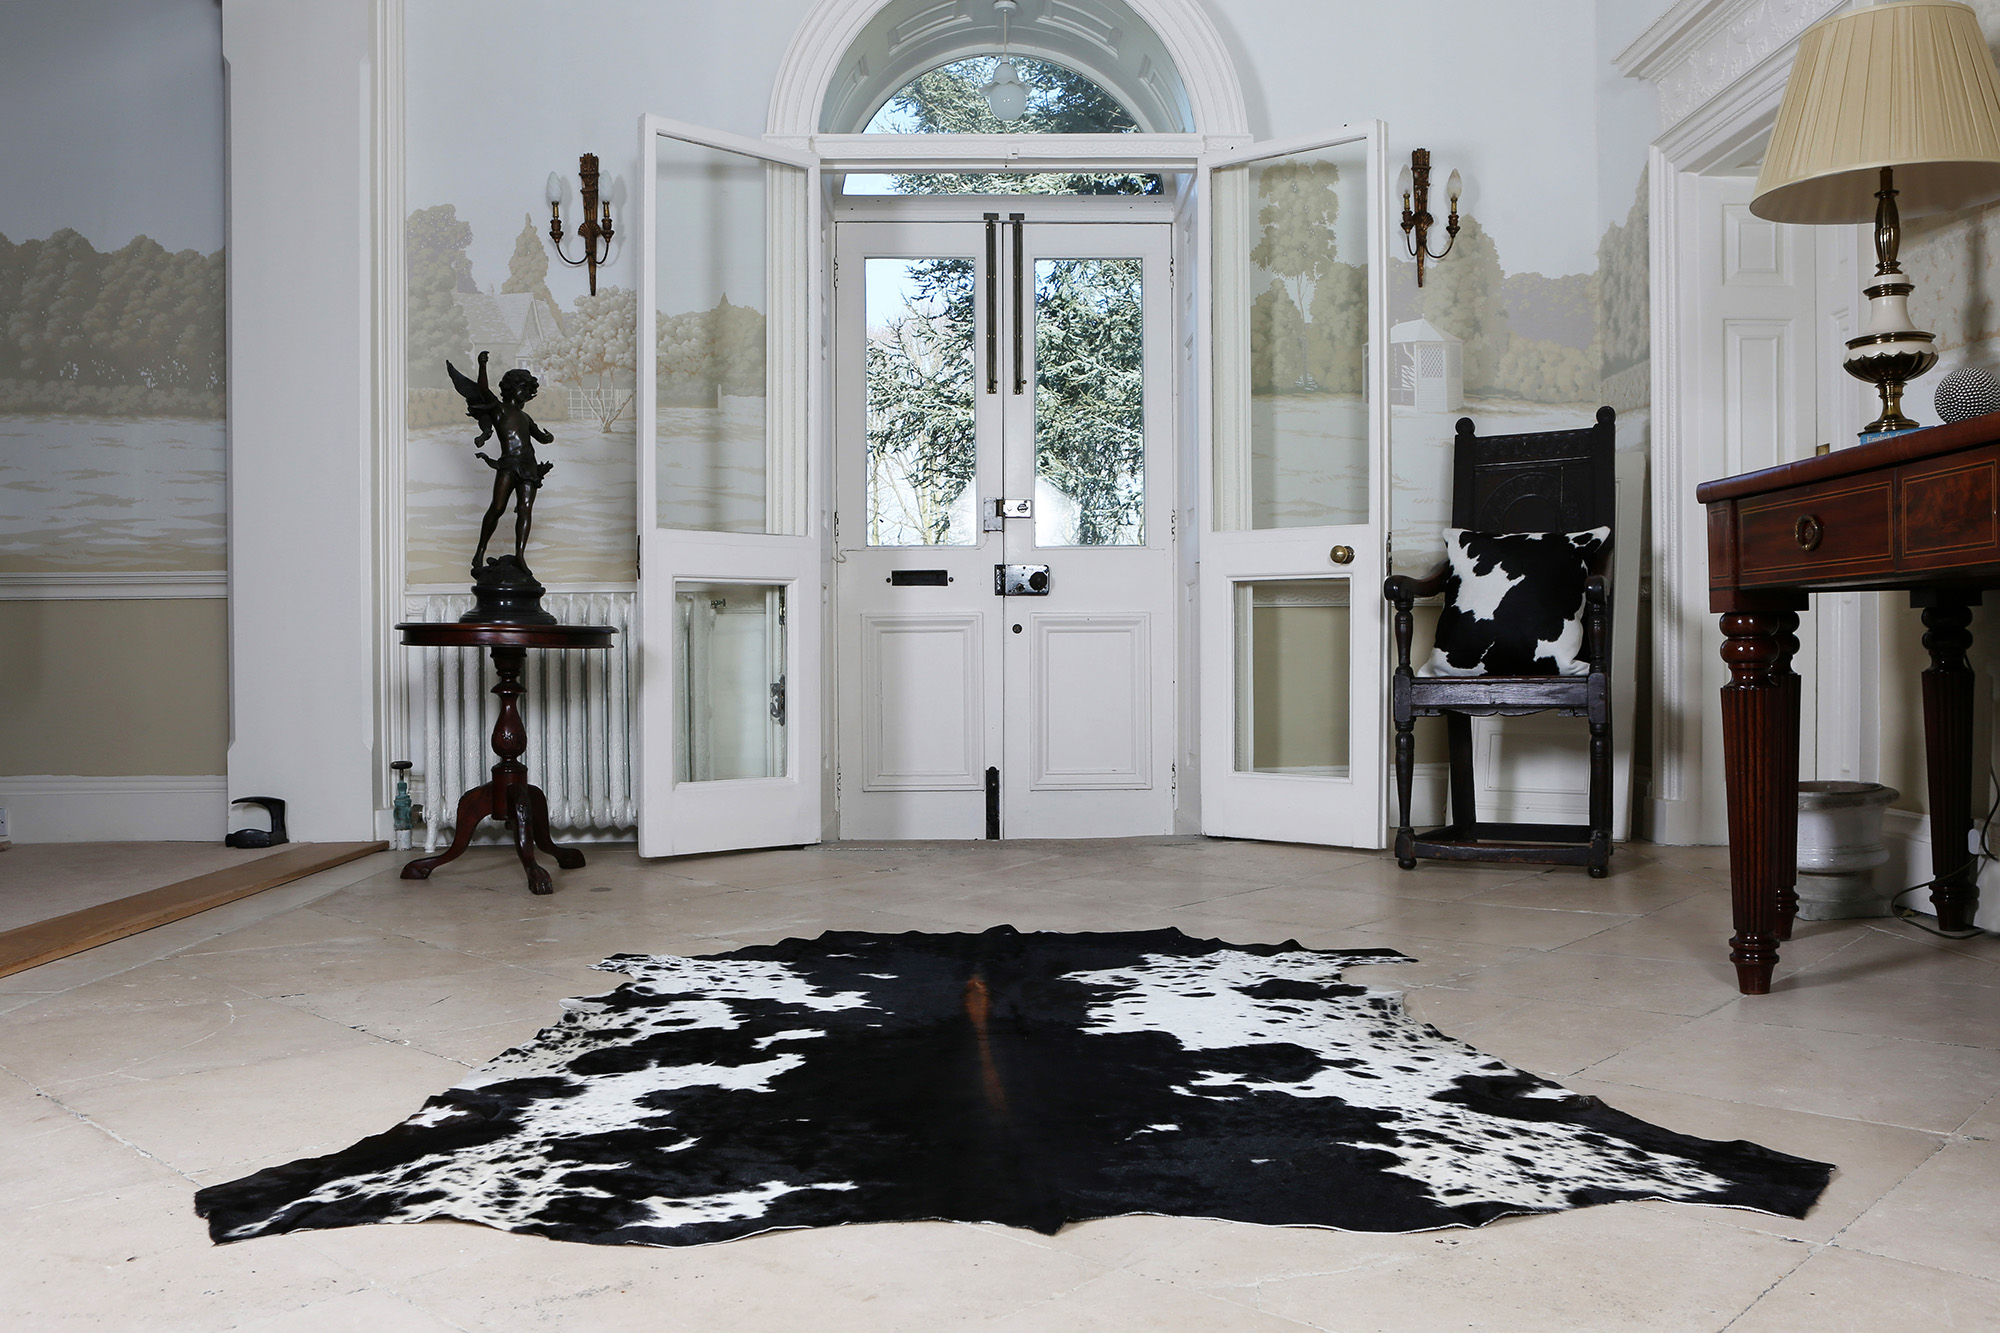 Nguni cowhide rugs, black and white hides, grey cowhides, skins, animal print, cowhide, luxury rugs, interiors, home interiors, interior styling, soft furnishings, sustainable, ethical, skins, by product, hallway decor,